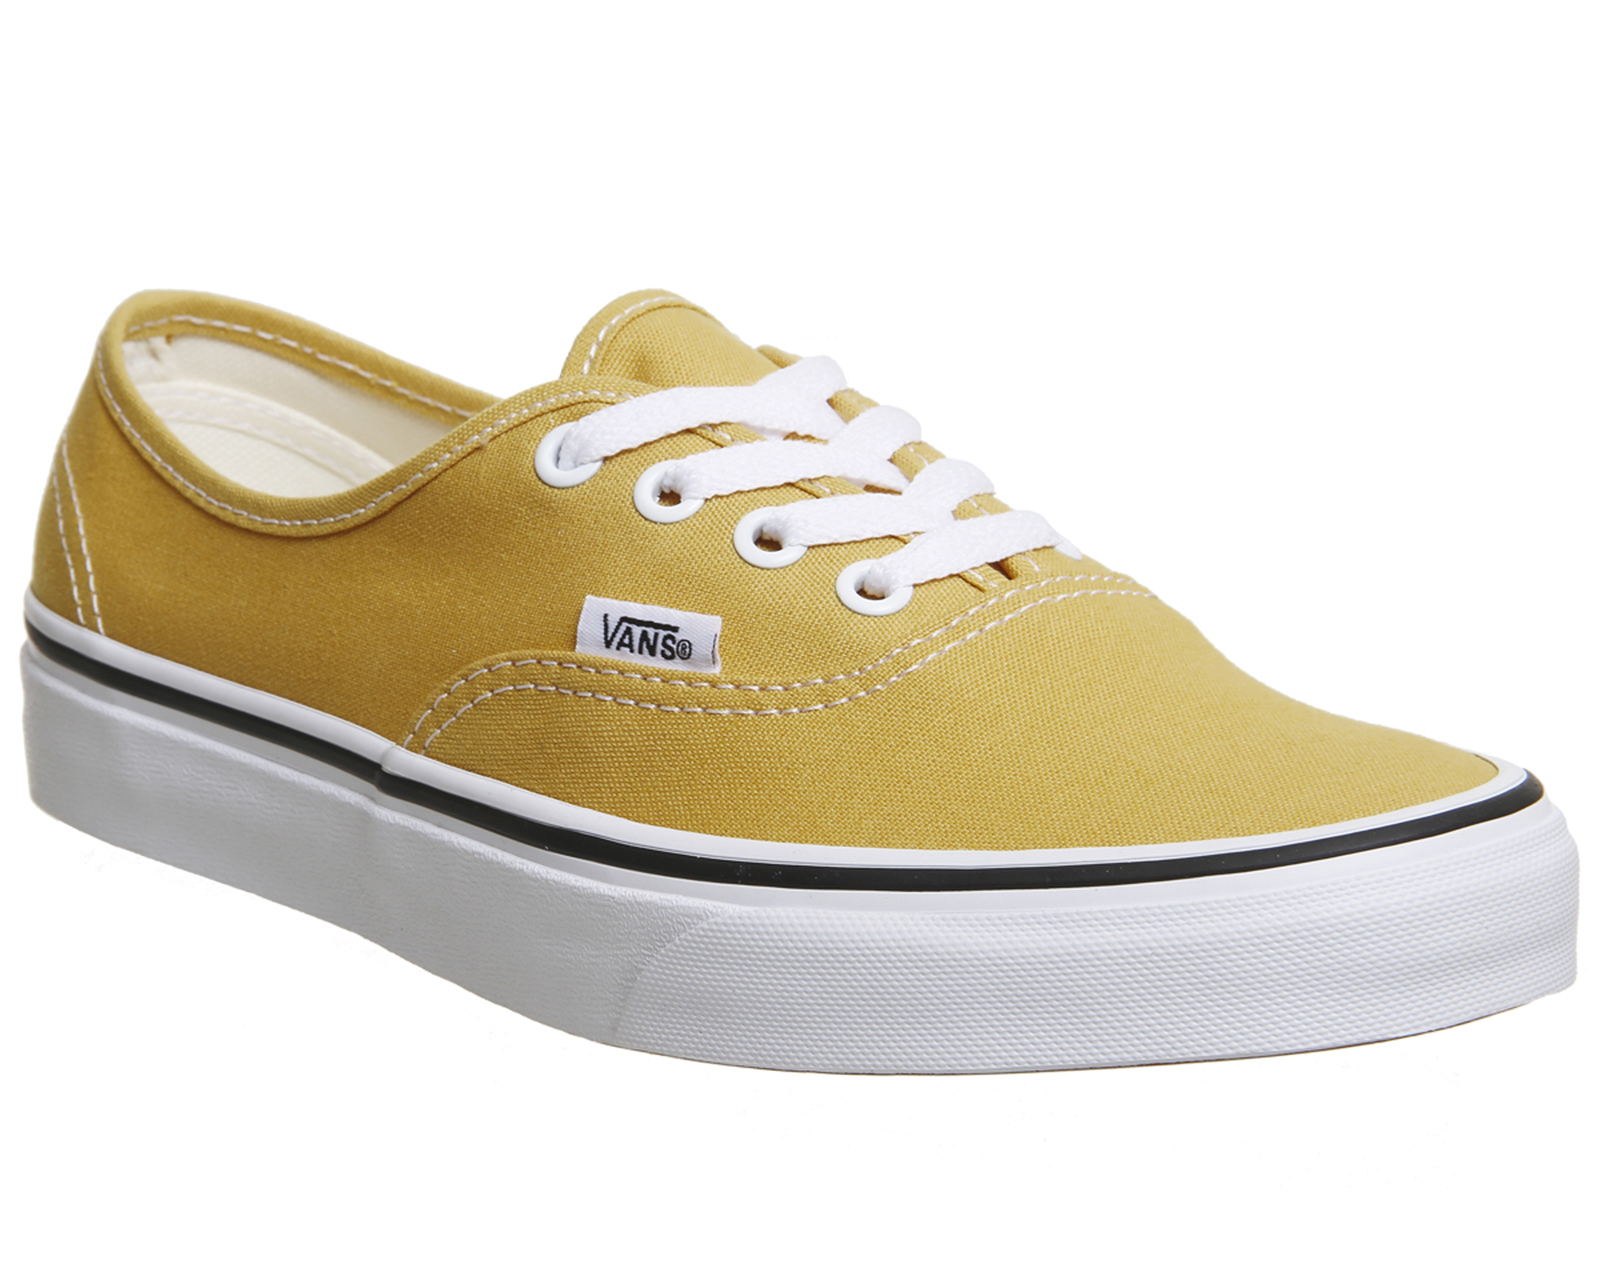 Sentinel Womens Vans Authentic Trainers OCHRE TRUE WHITE Trainers Shoes 74d5e81a8